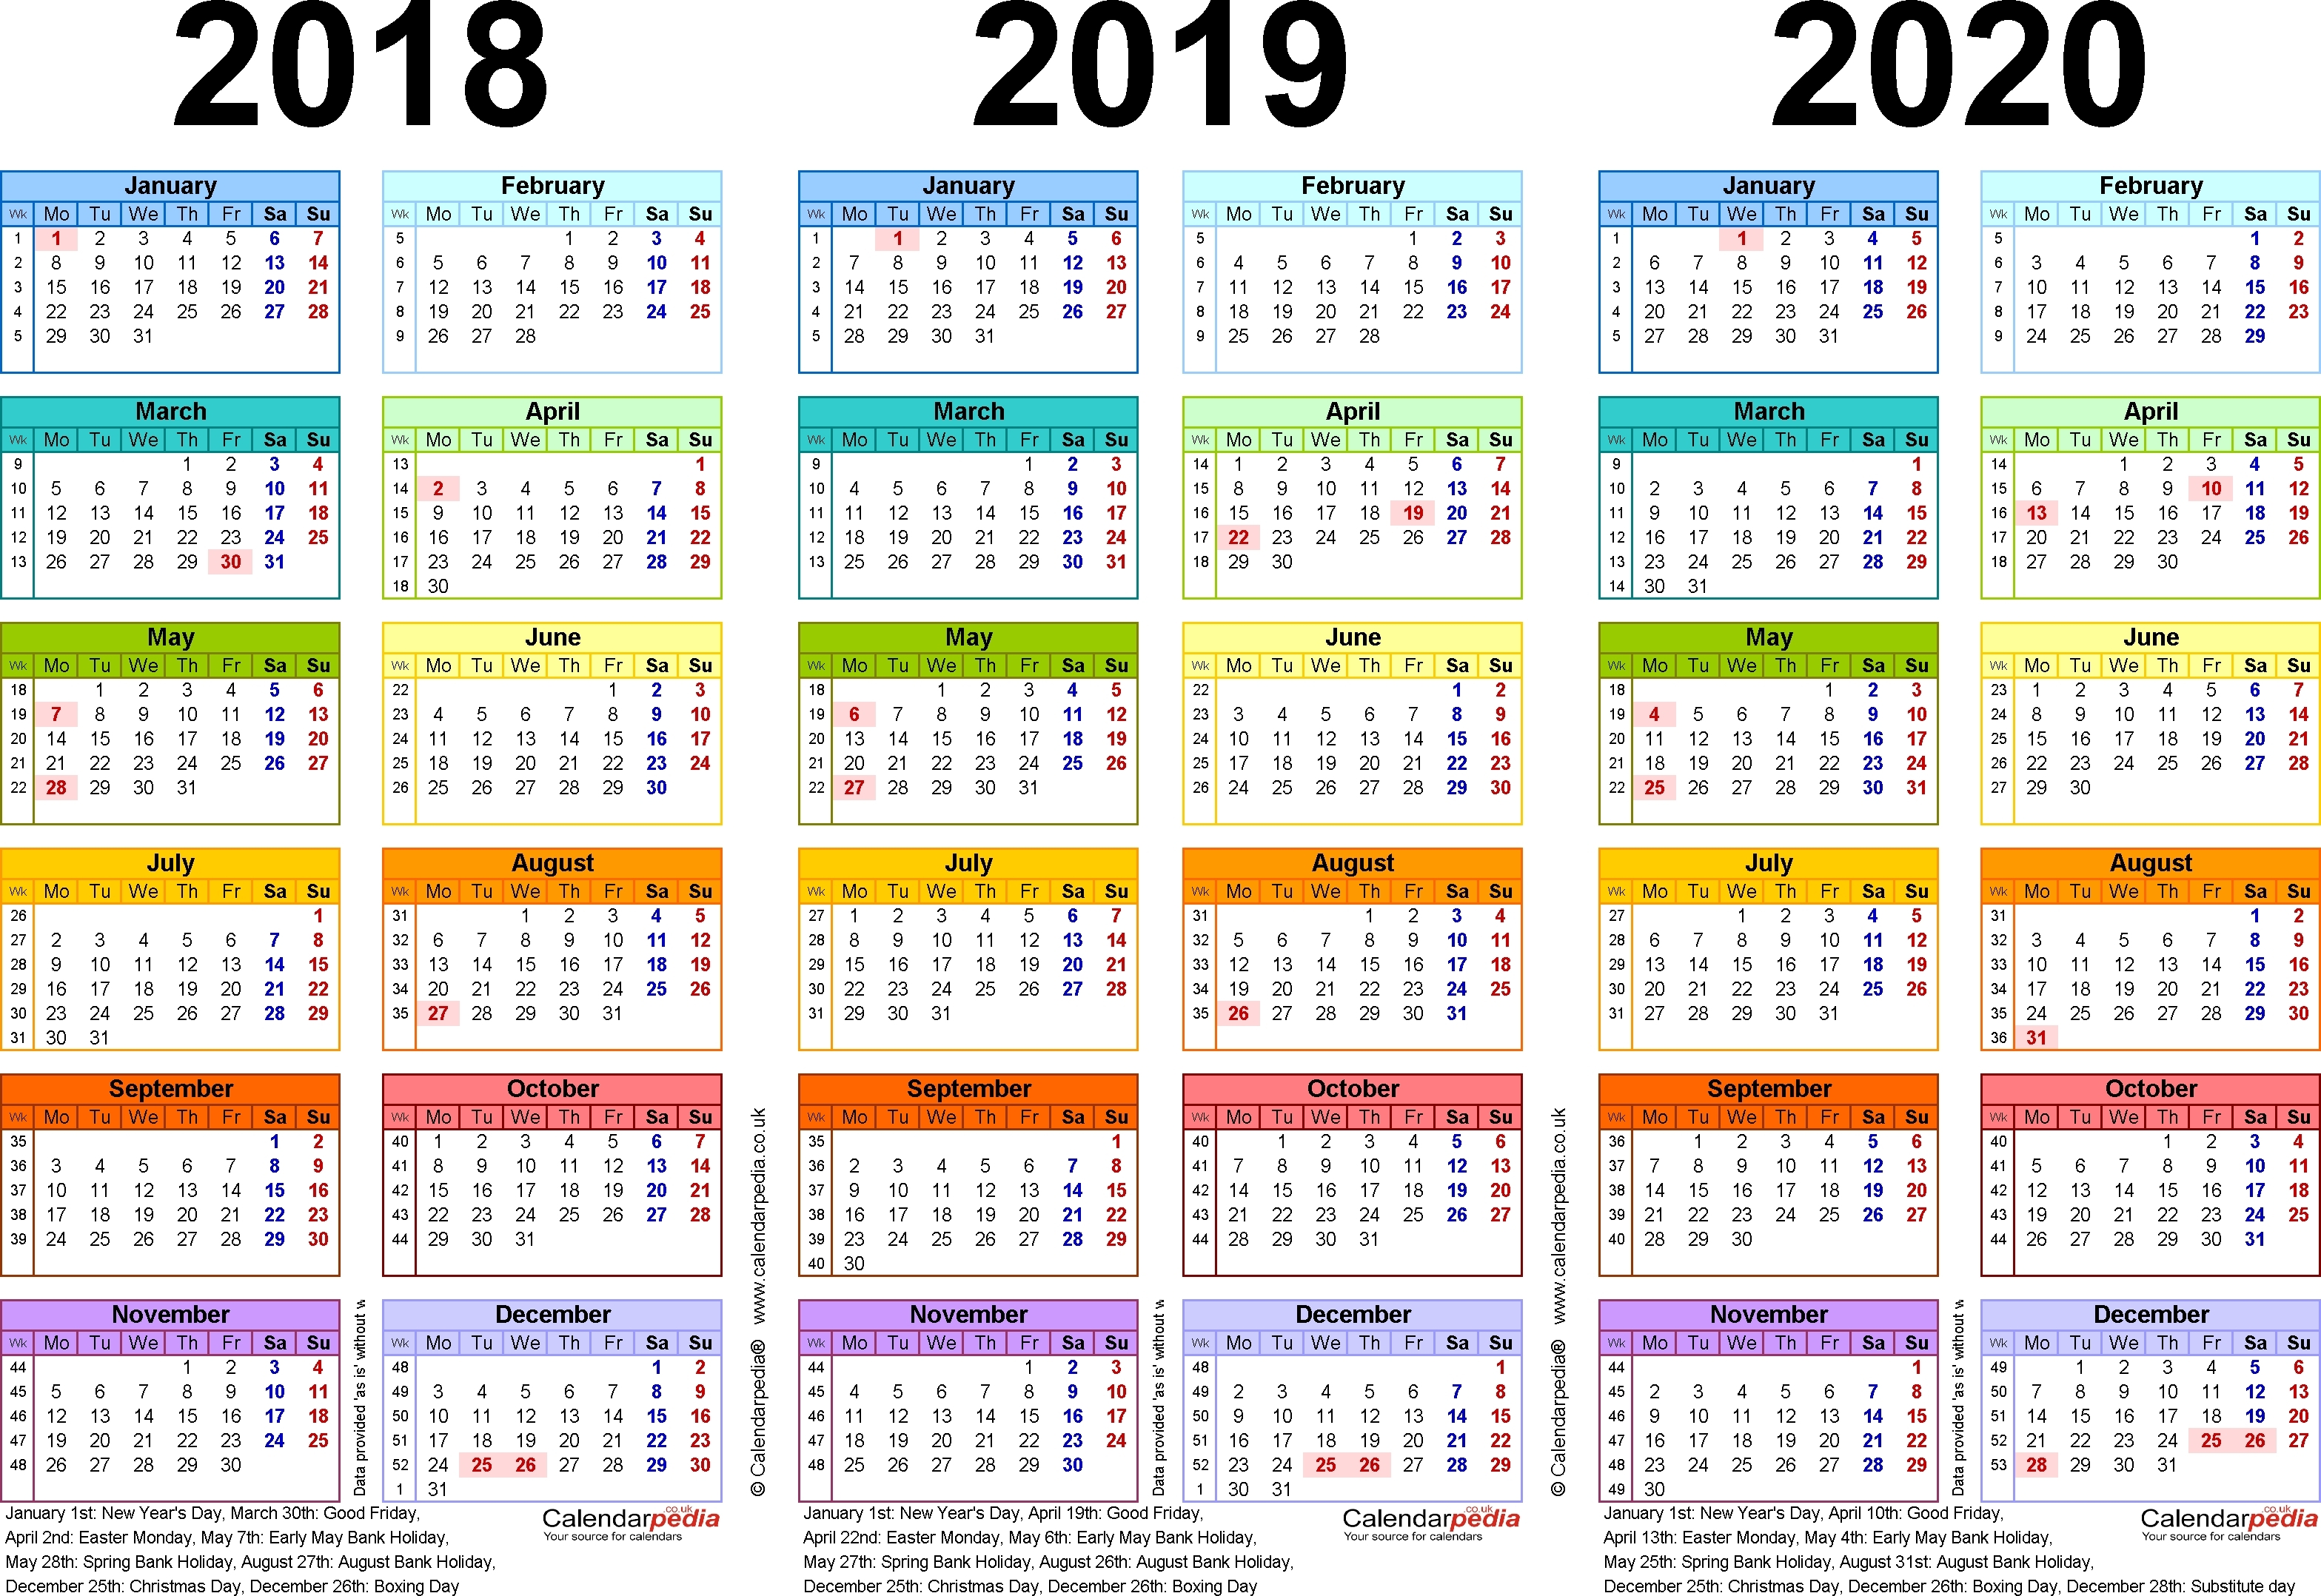 Exceptional 2020 Calendar South Africa • Printable Blank-2020 Calendar With Holidays South Africa